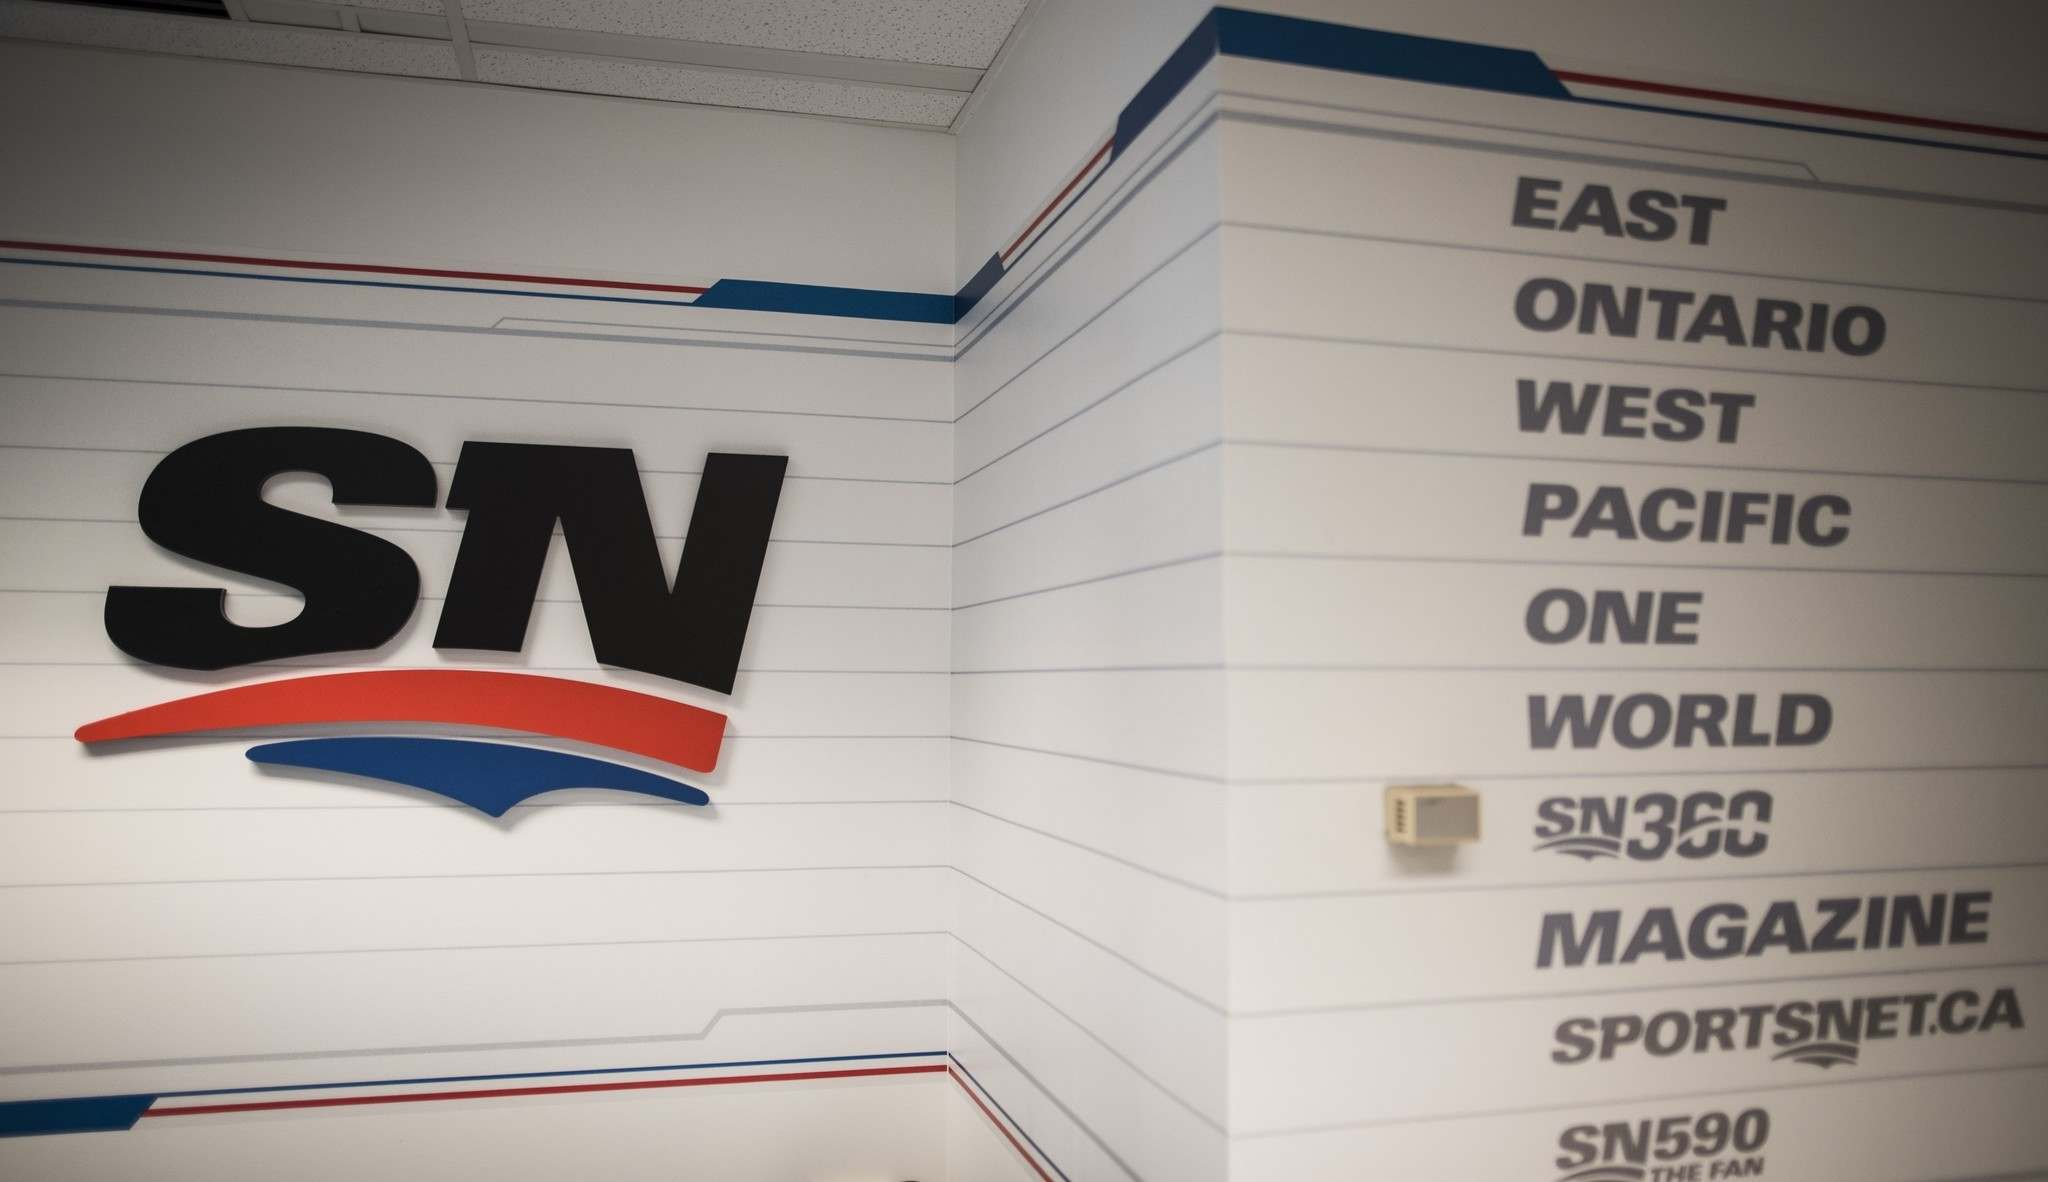 Sports networks, such as ESPN in the U.S. and both Sportsnet and TSN in Canada, began retrenching years ago.